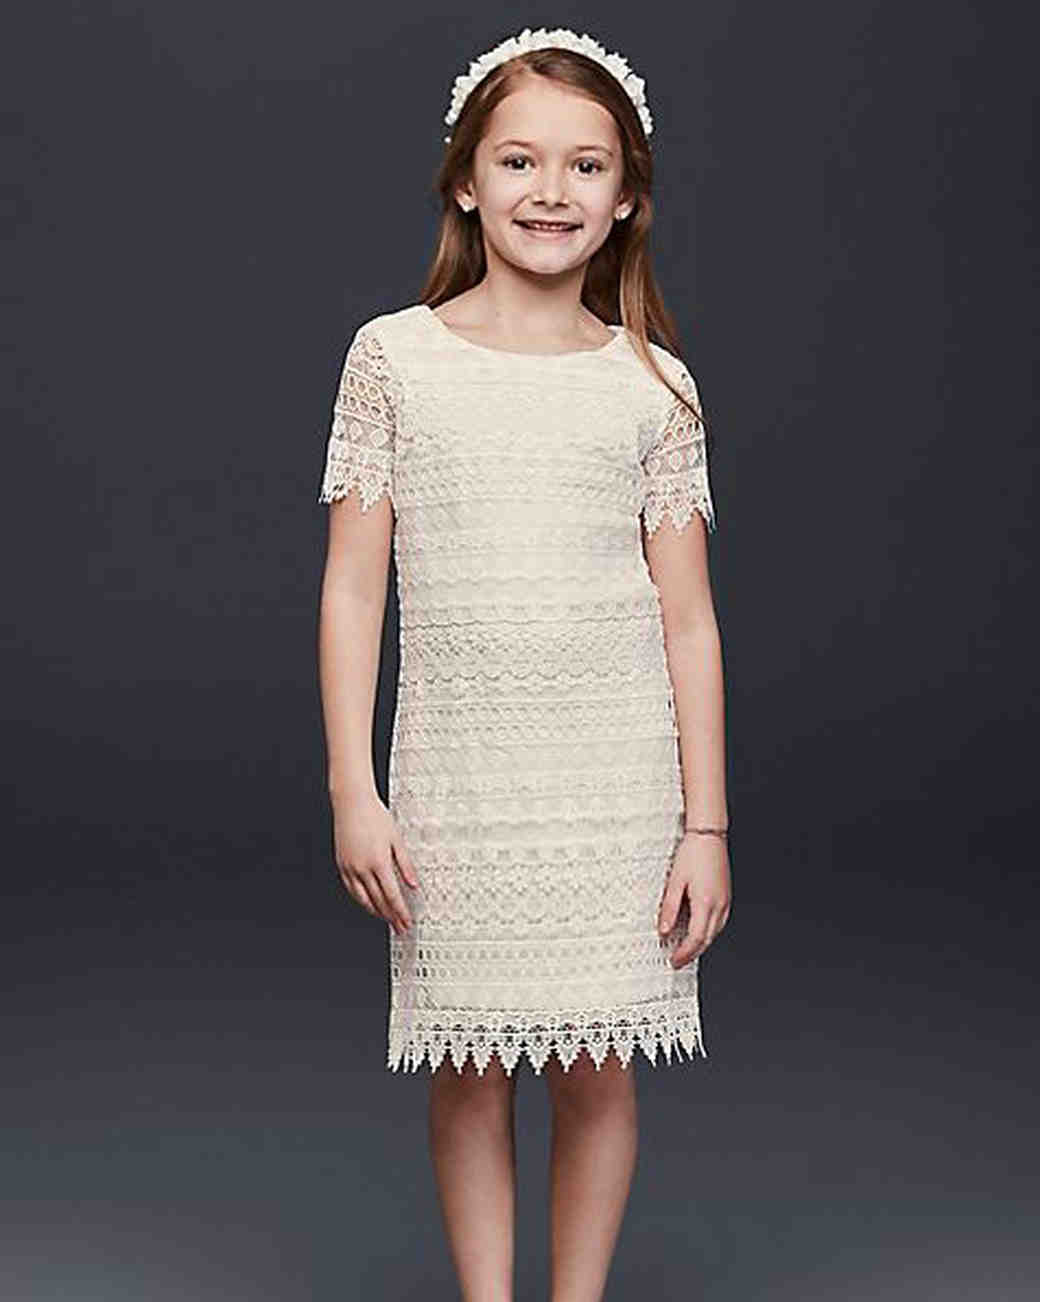 1aeb69a4074 The Sweetest Lace Flower Girl Dresses